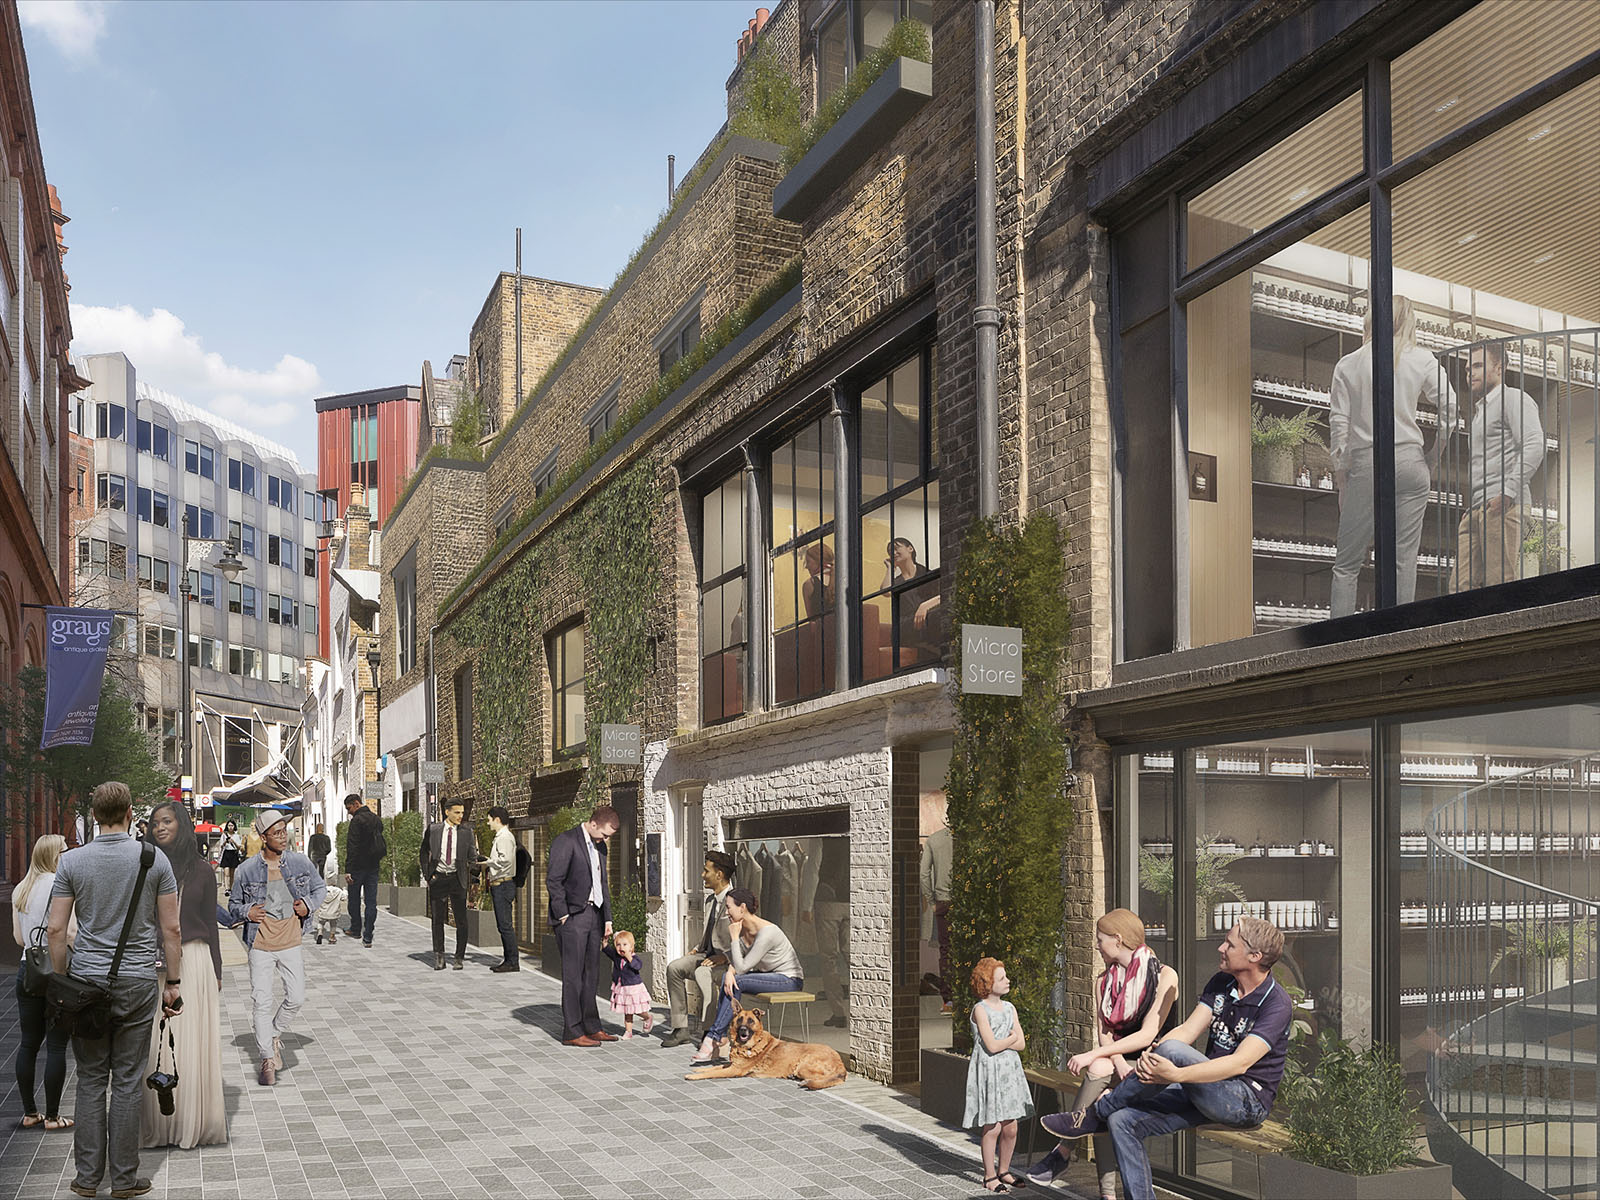 southmoltontriangle-cgi-july-southmoltonlane-lrg.jpg